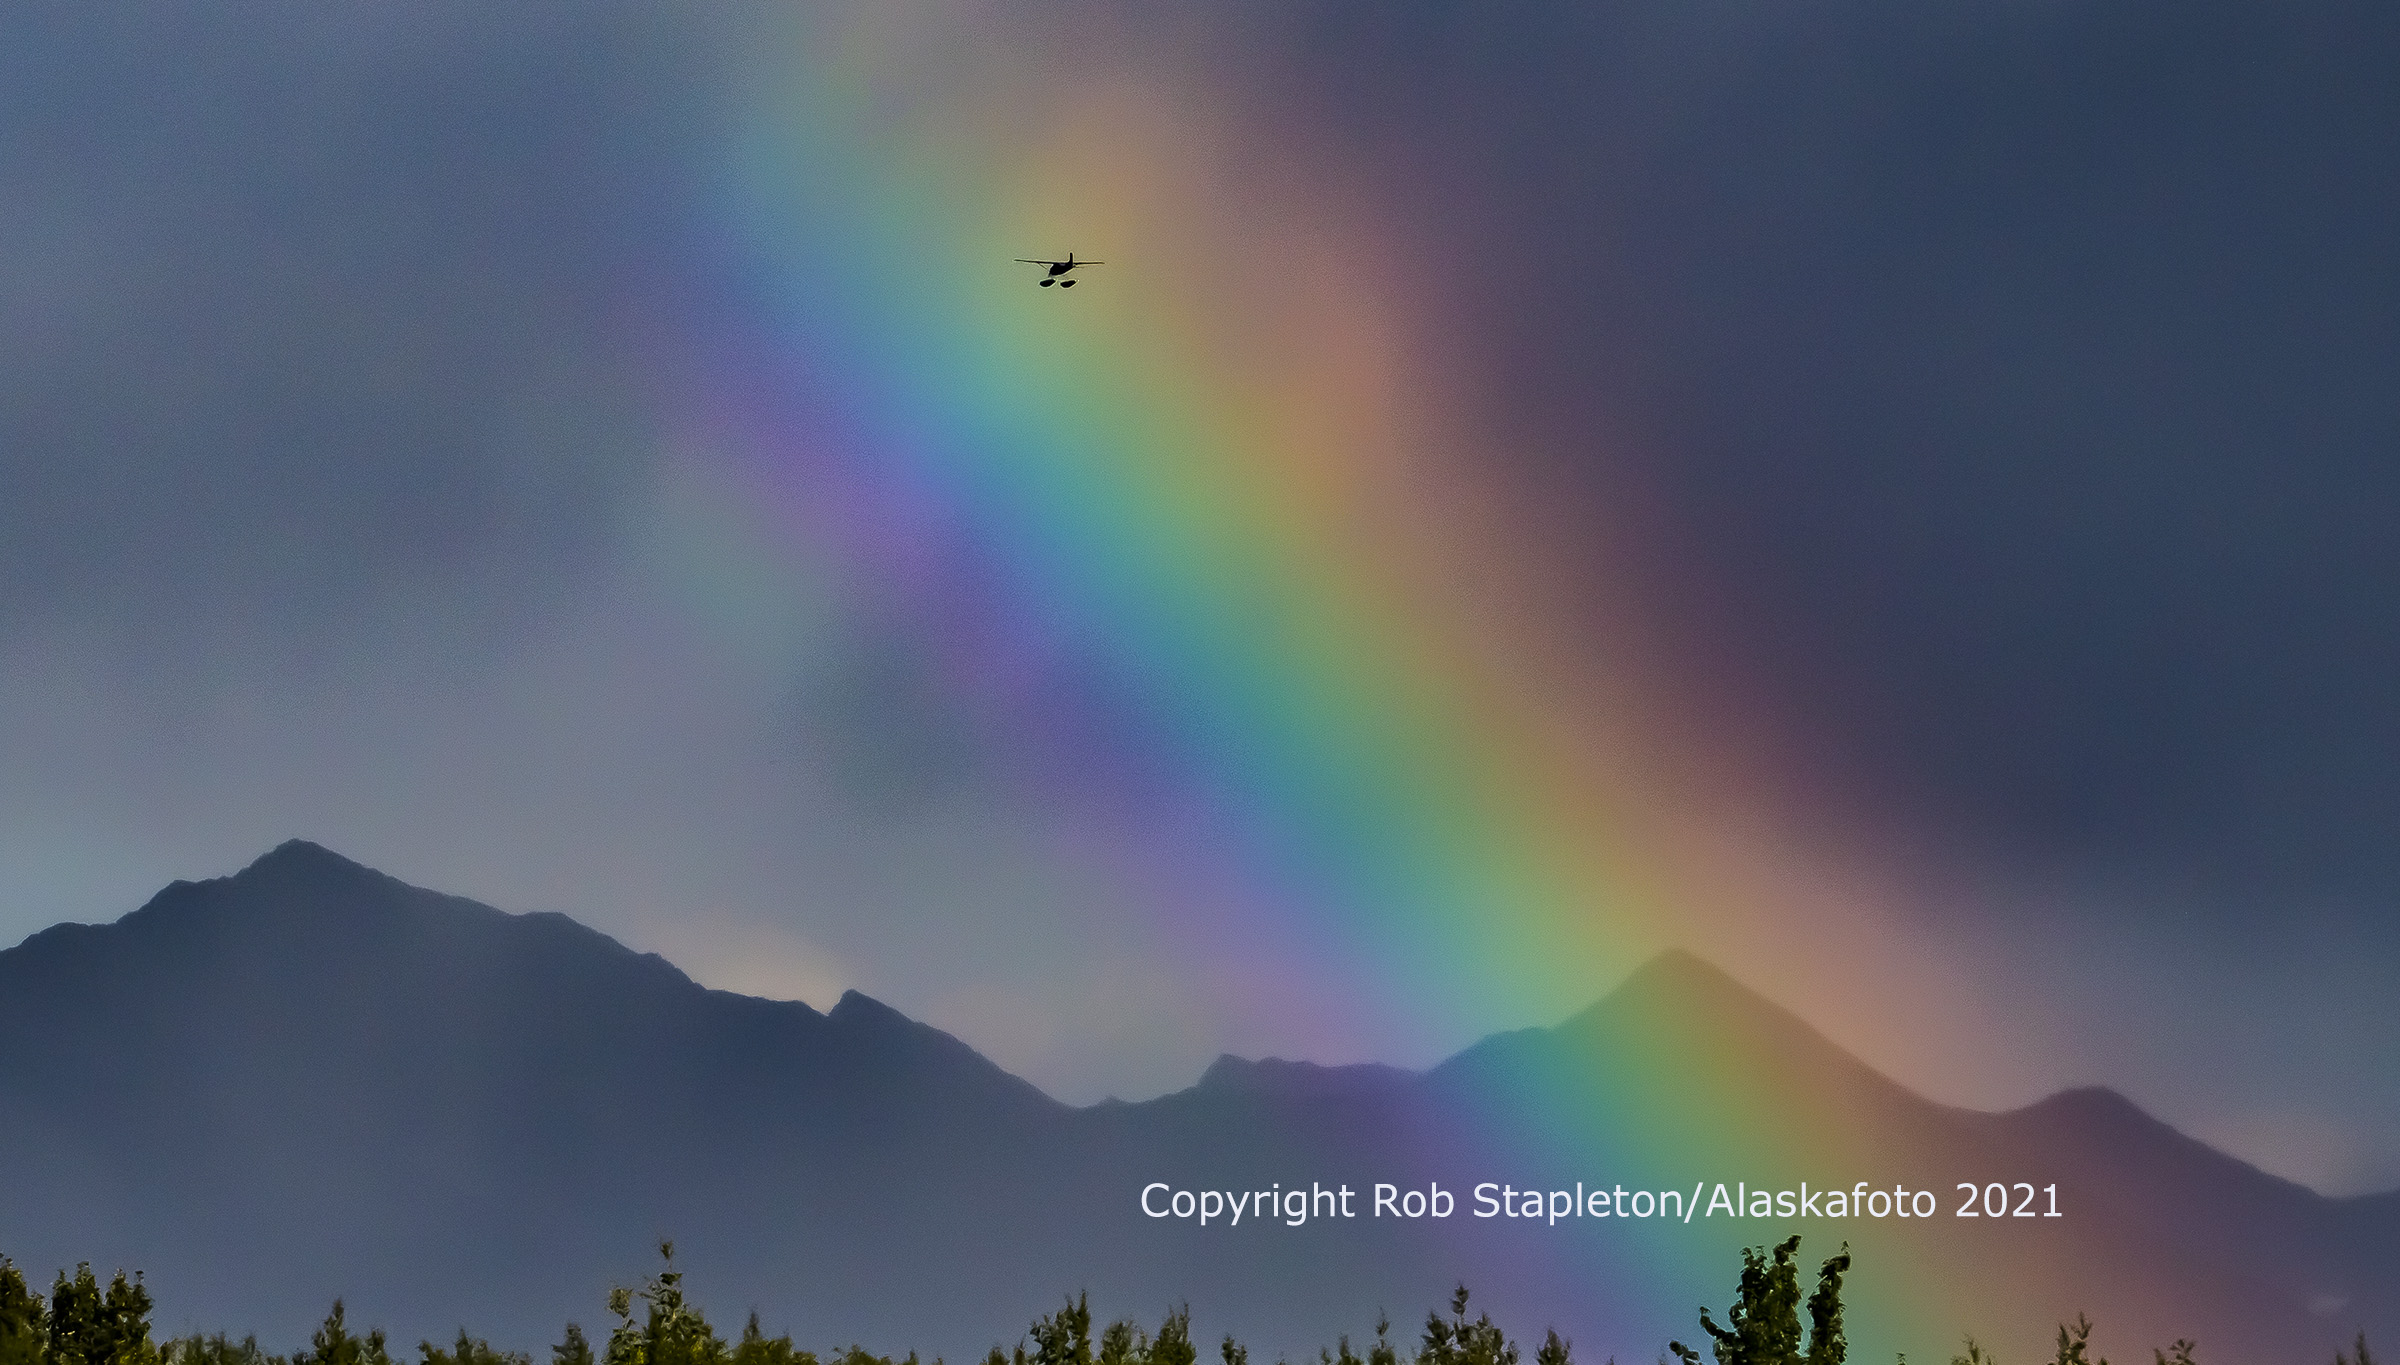 Arc of a rainbow with an aircraft flying through it